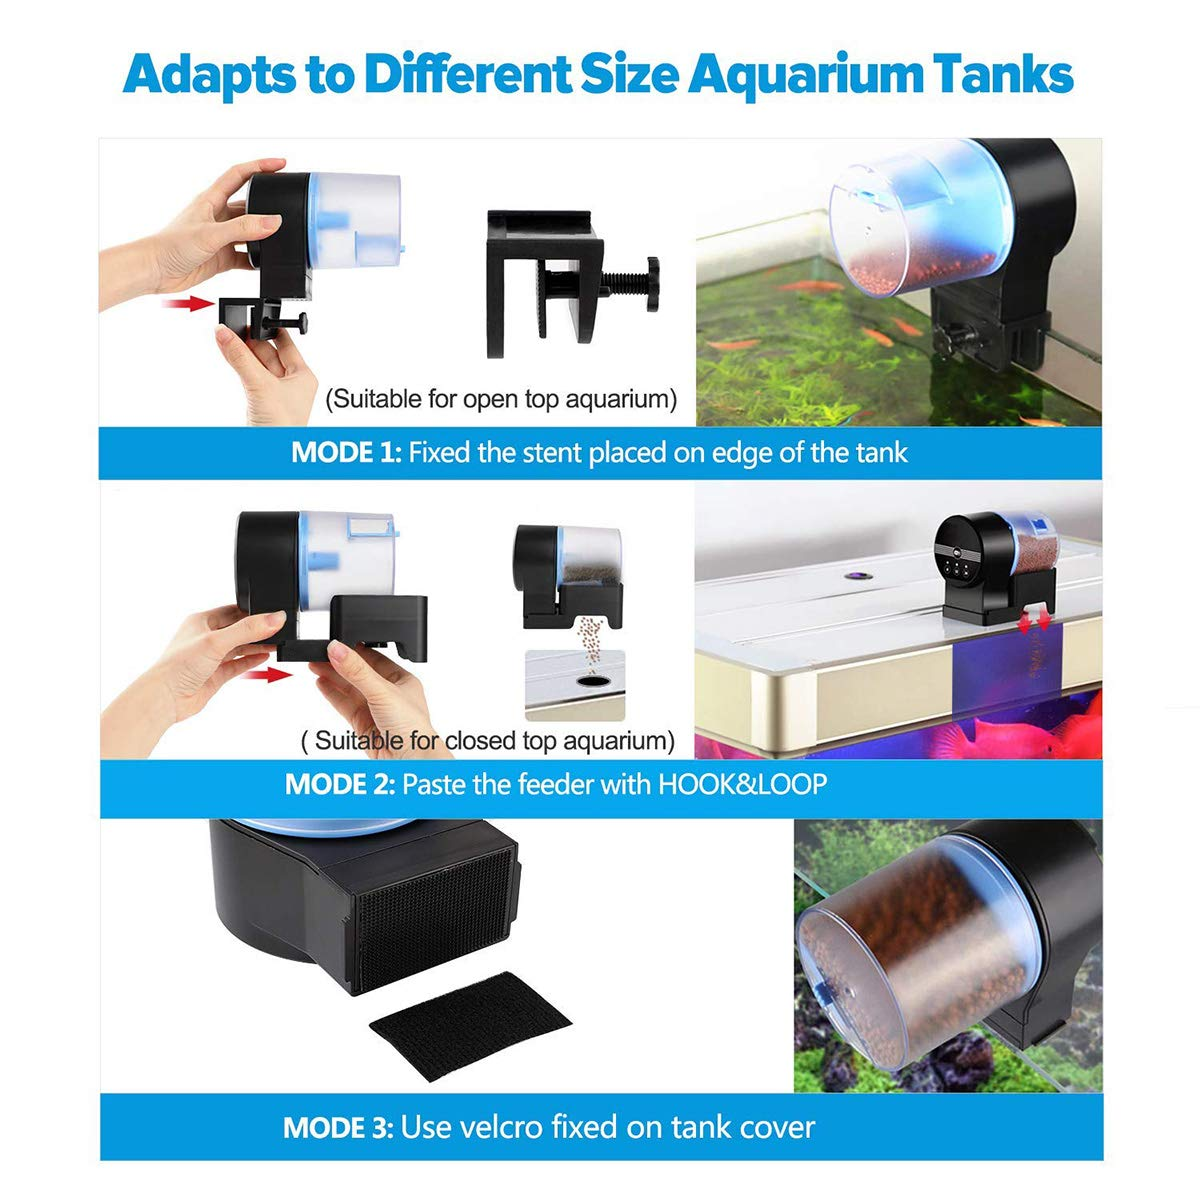 Automatic Fish Feeders by ALZERO, Electric Automatic/Manual Fish Feeder, Aquarium Tank Timer Feeder & Weekend 2 Fish Food Dispenser (AK-03) by ALZERO-Pet Supplies (Image #3)